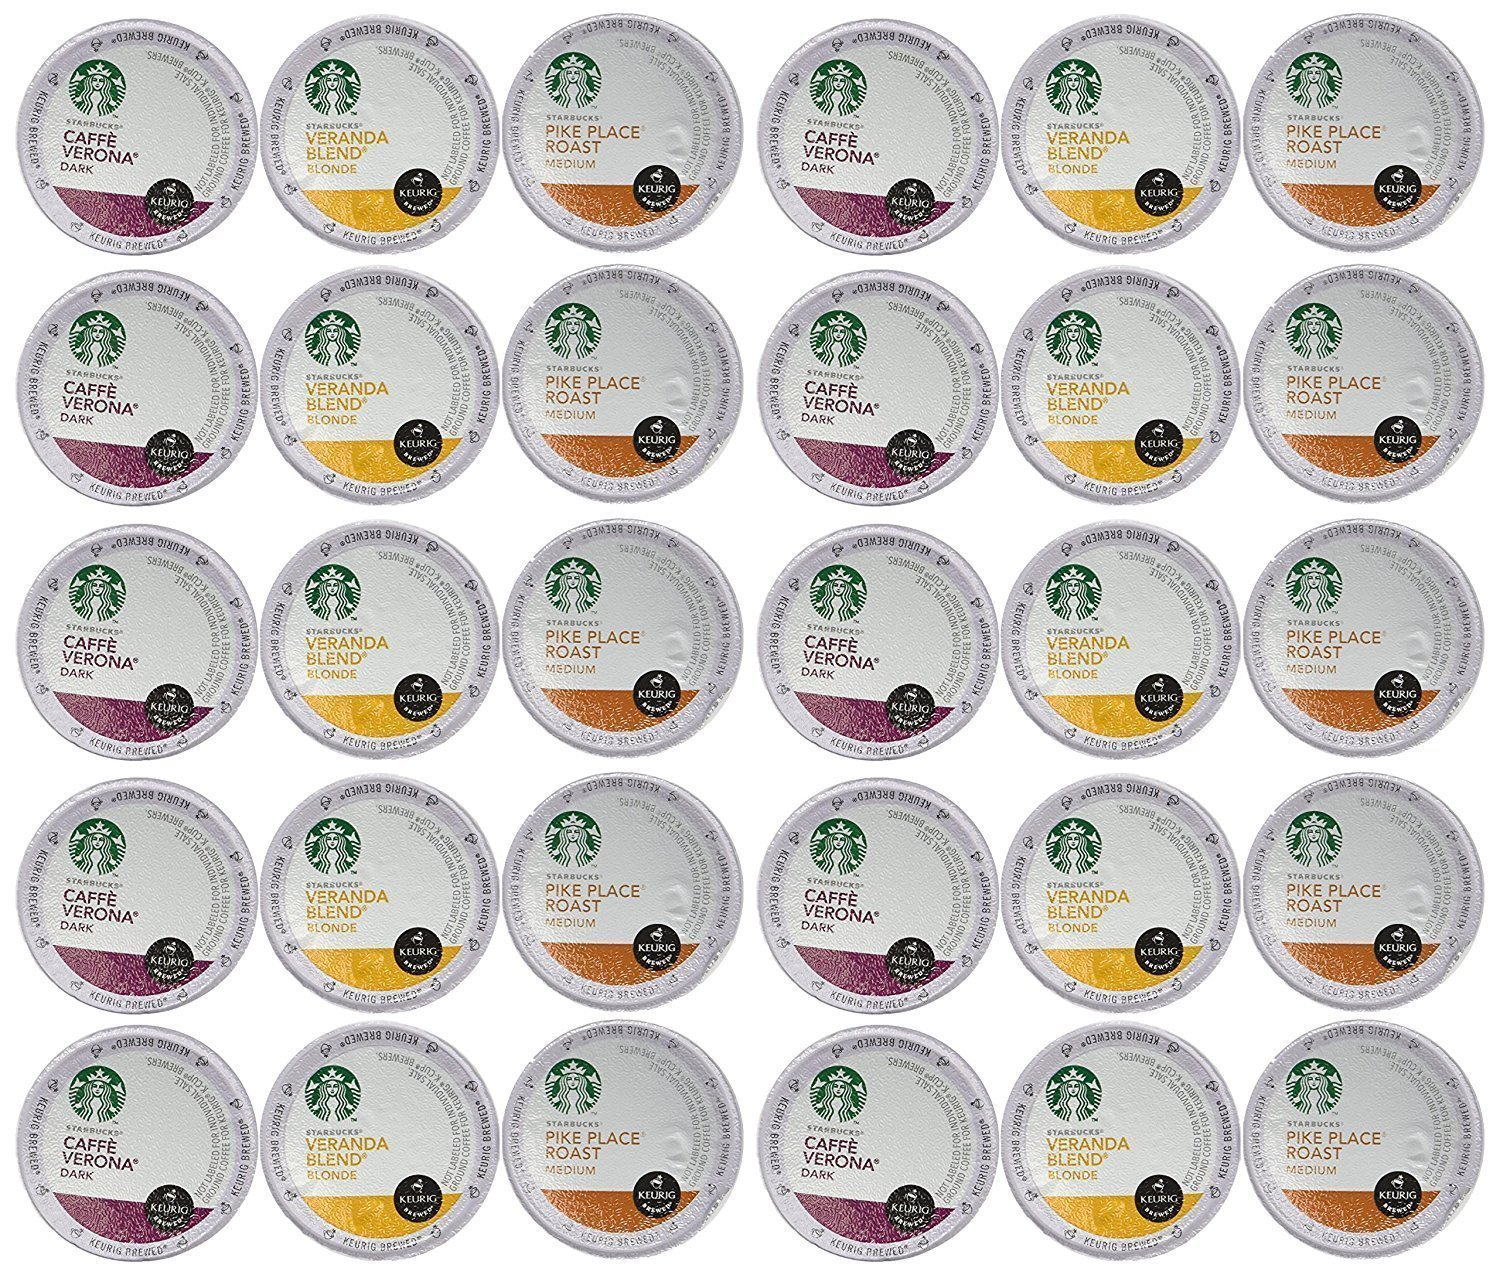 Starbucks Coffee K-Cups for Keurig Brewer 30 Piece Variety Pack by Starbucks (Image #1)